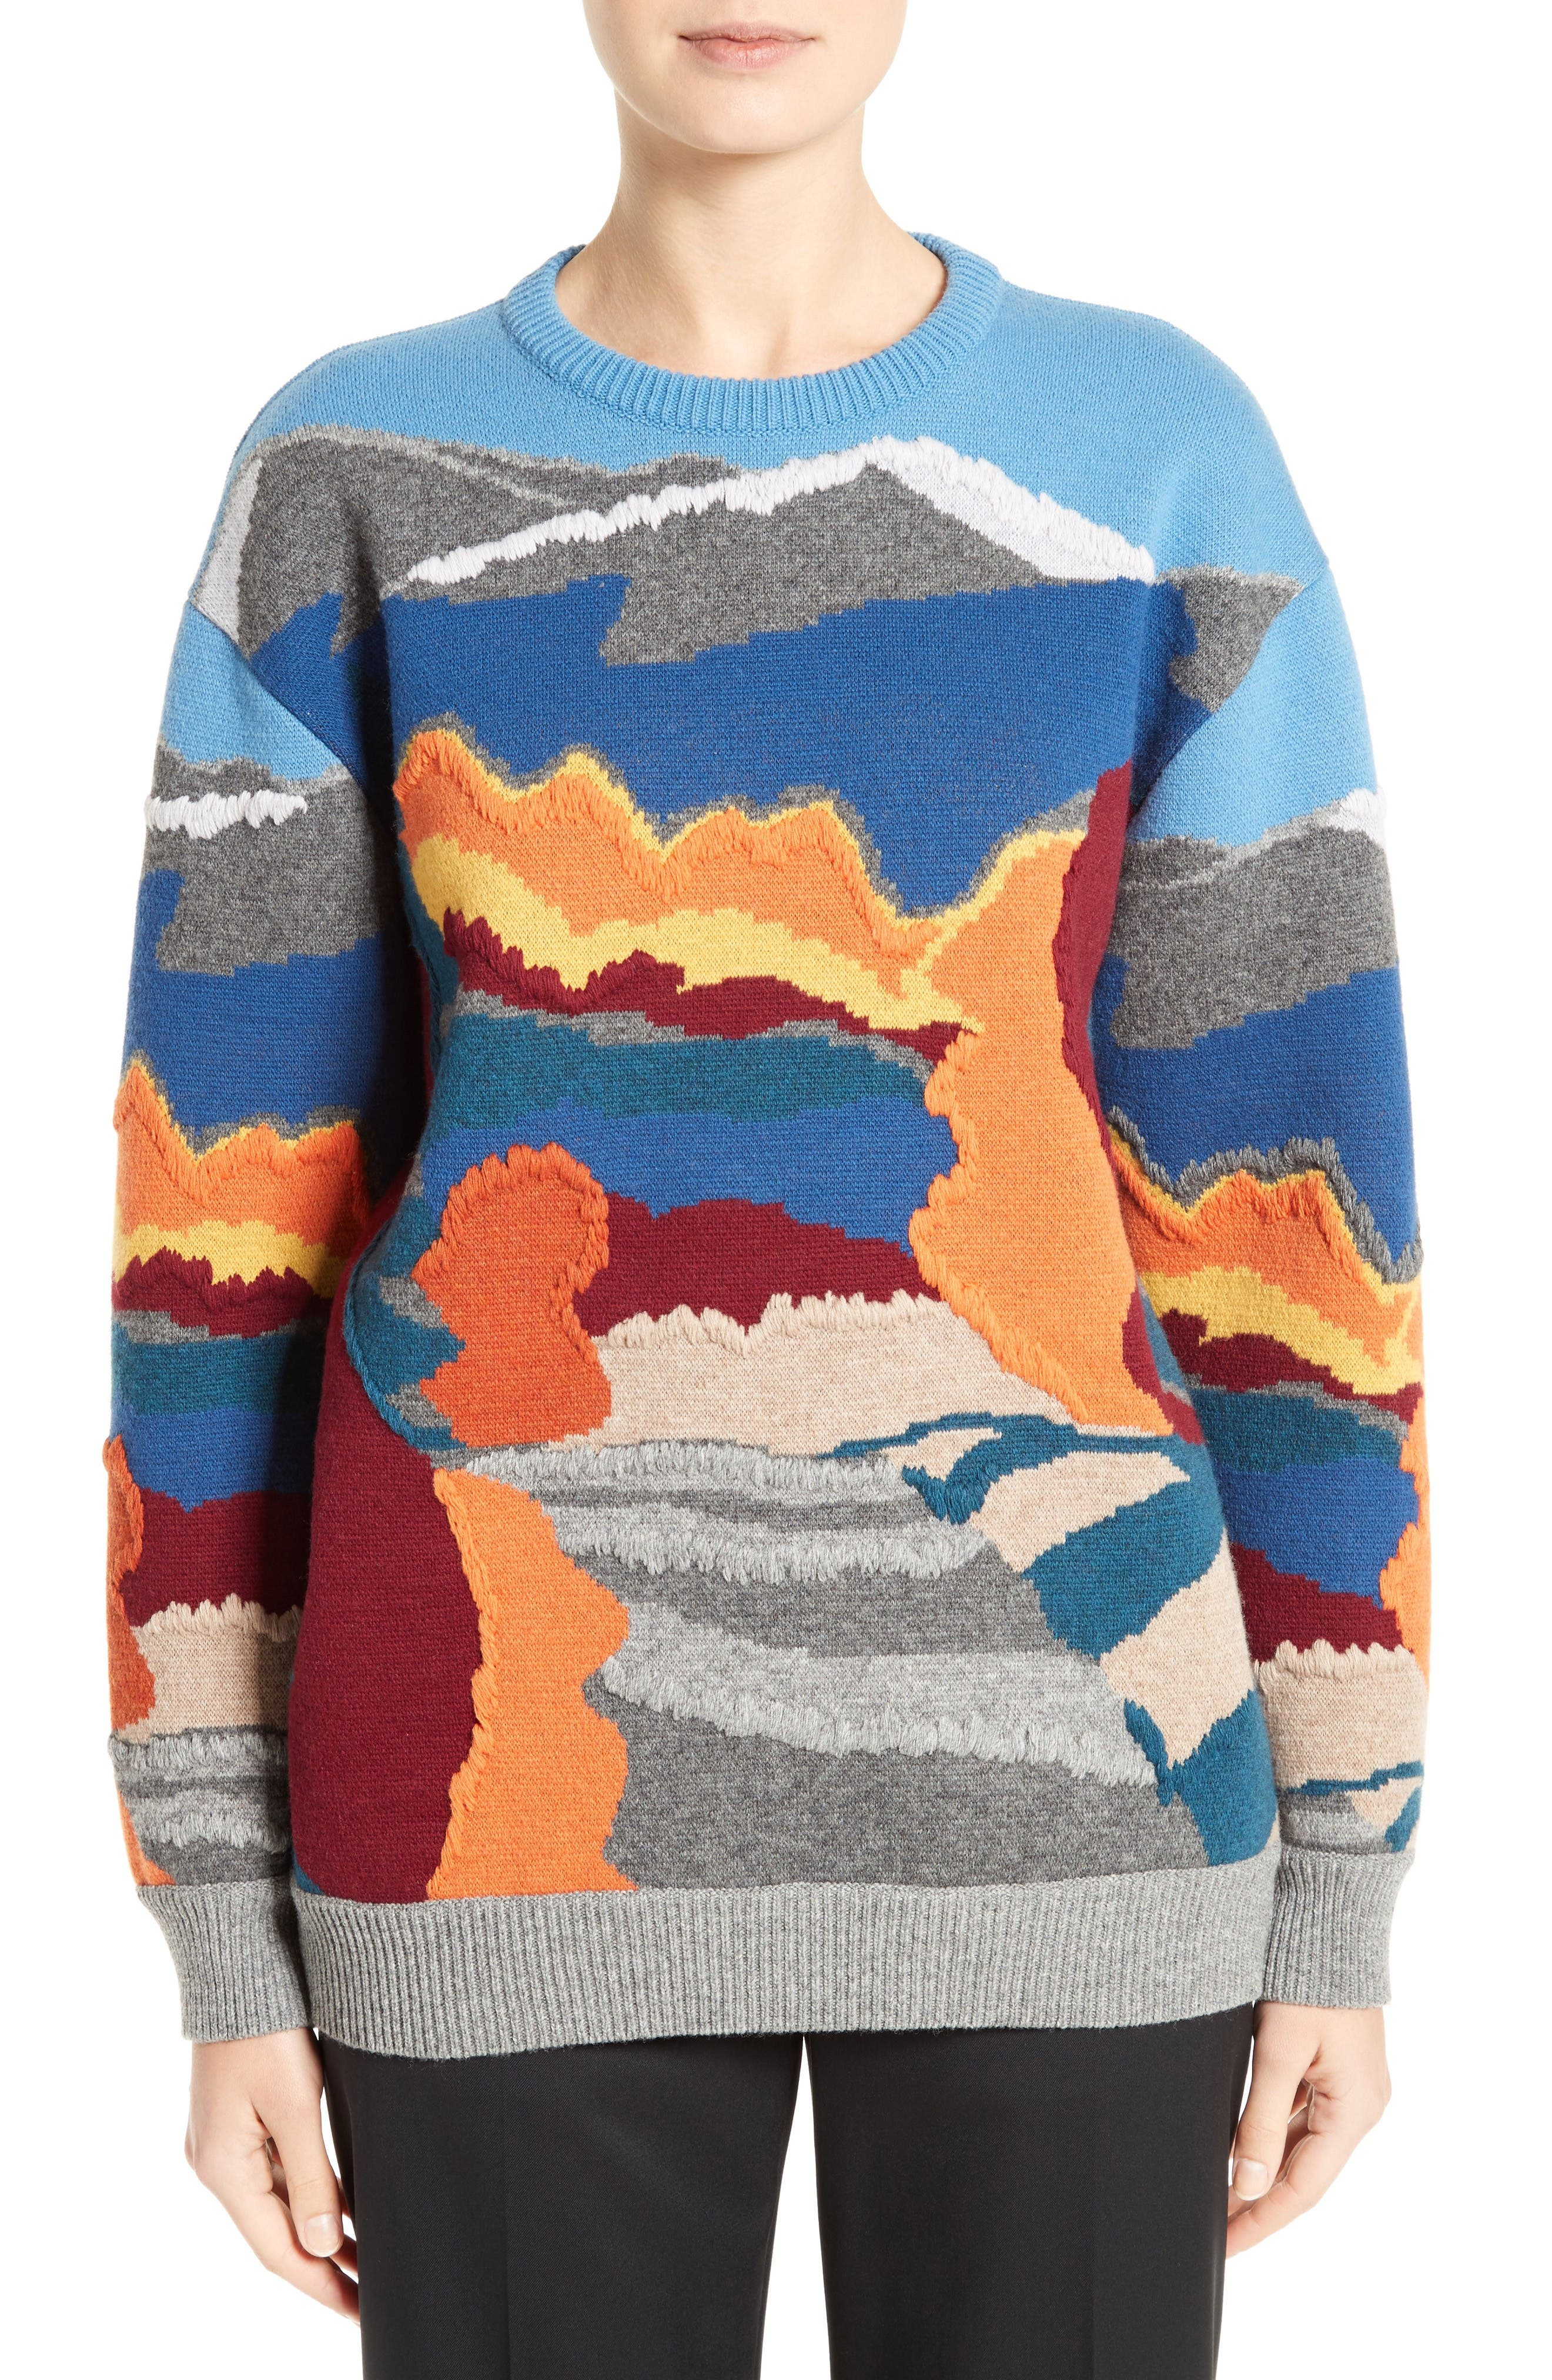 Main Image - Stella McCartney 'Landscape' Intarsia Knit Wool Sweater